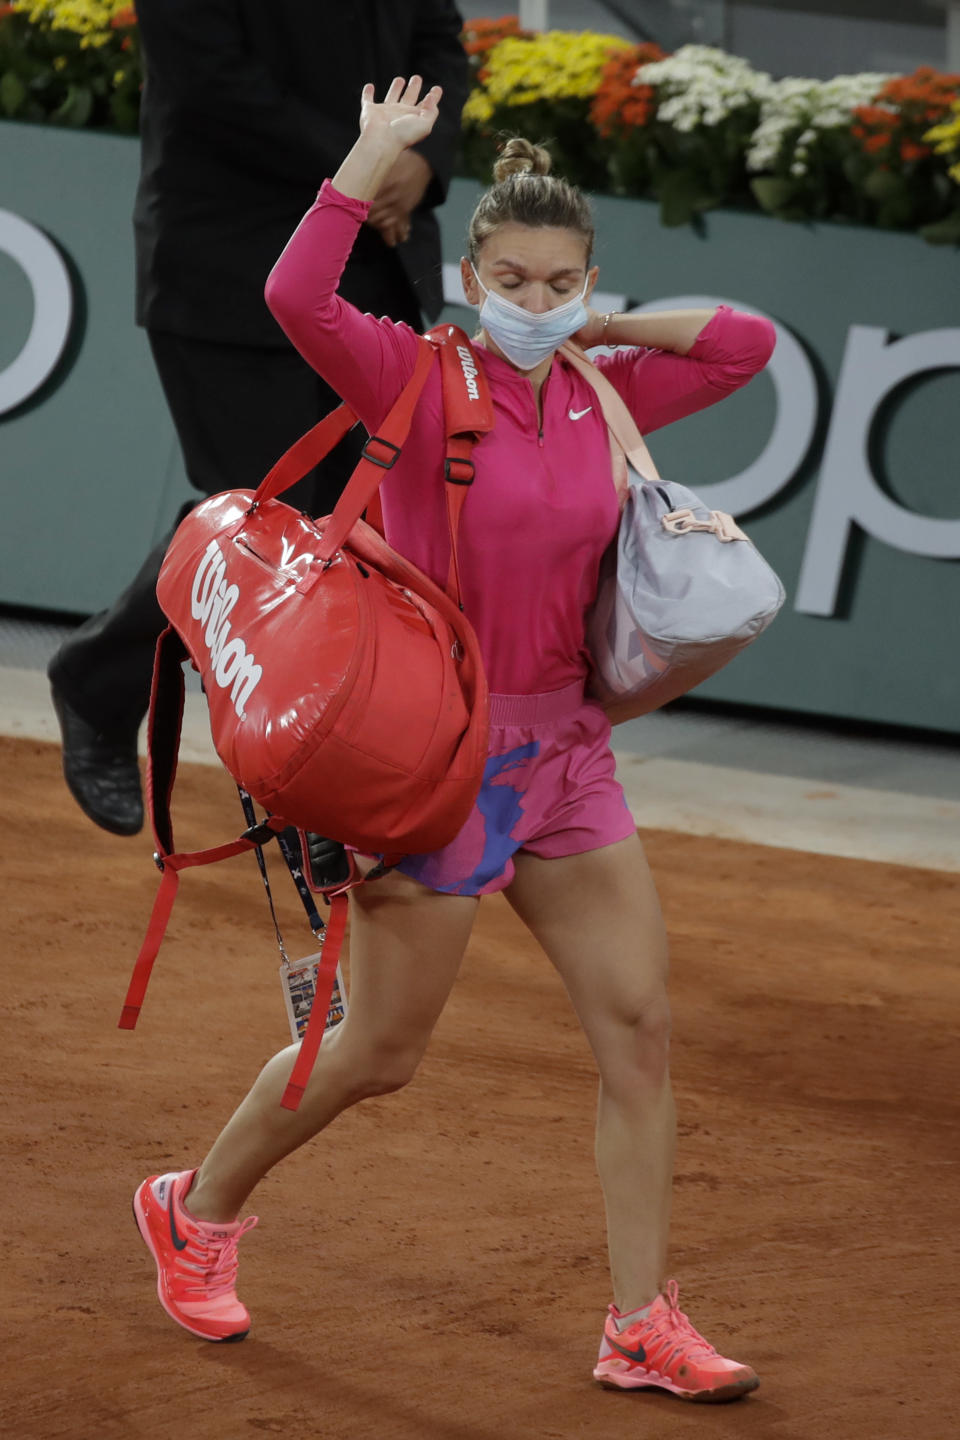 FILE - In this file photo dated Sunday, Oct. 4, 2020, Romania's Simona Halep wears a face mask as she leaves after losing her fourth round match of the French Open tennis tournament against Poland's Iga Swiatek at the Roland Garros stadium in Paris, France. Simona Halep said Saturday Oct. 31, 2020, that she has tested positive for COVID-19 coronavirus. (AP Photo/Alessandra Tarantino, FILE)